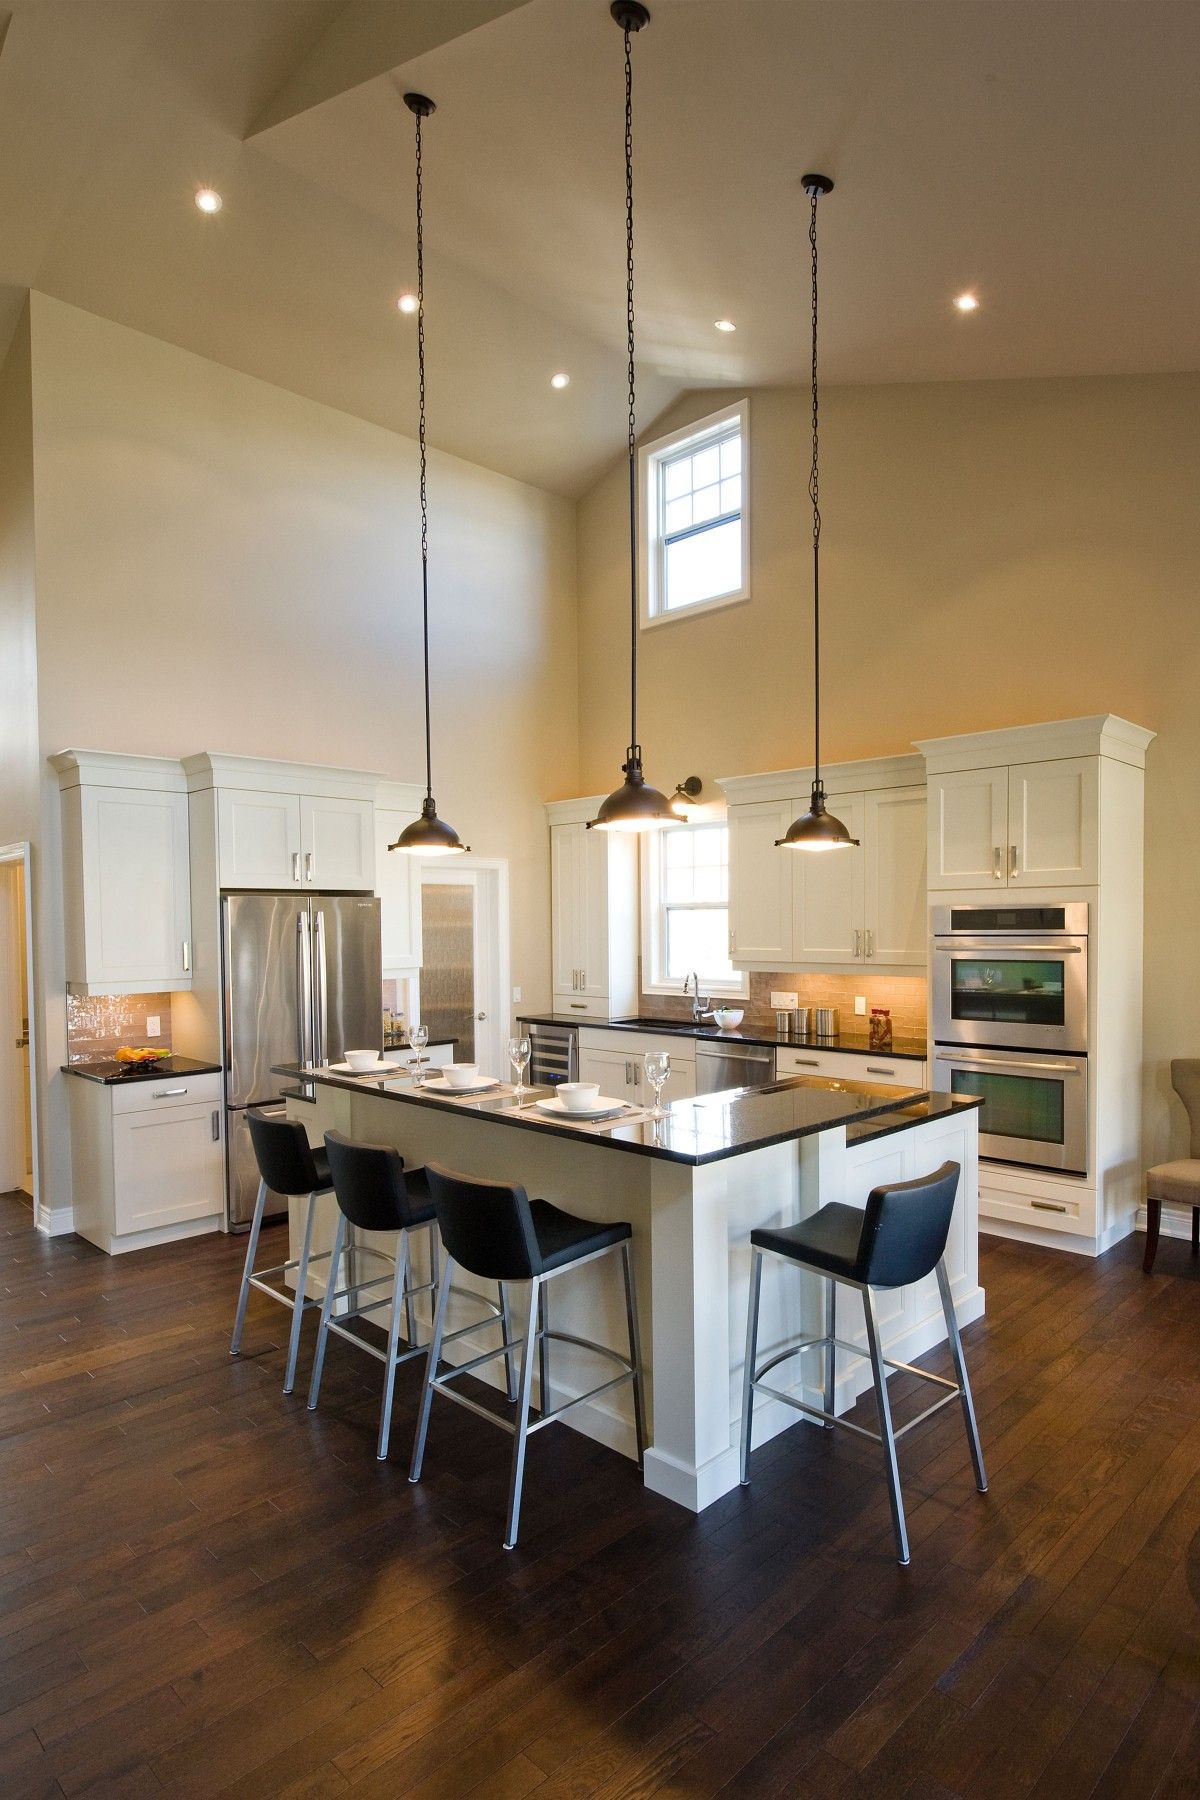 Kitchen Ceiling Lights (Kitchen Ceiling Fans with Lights ...